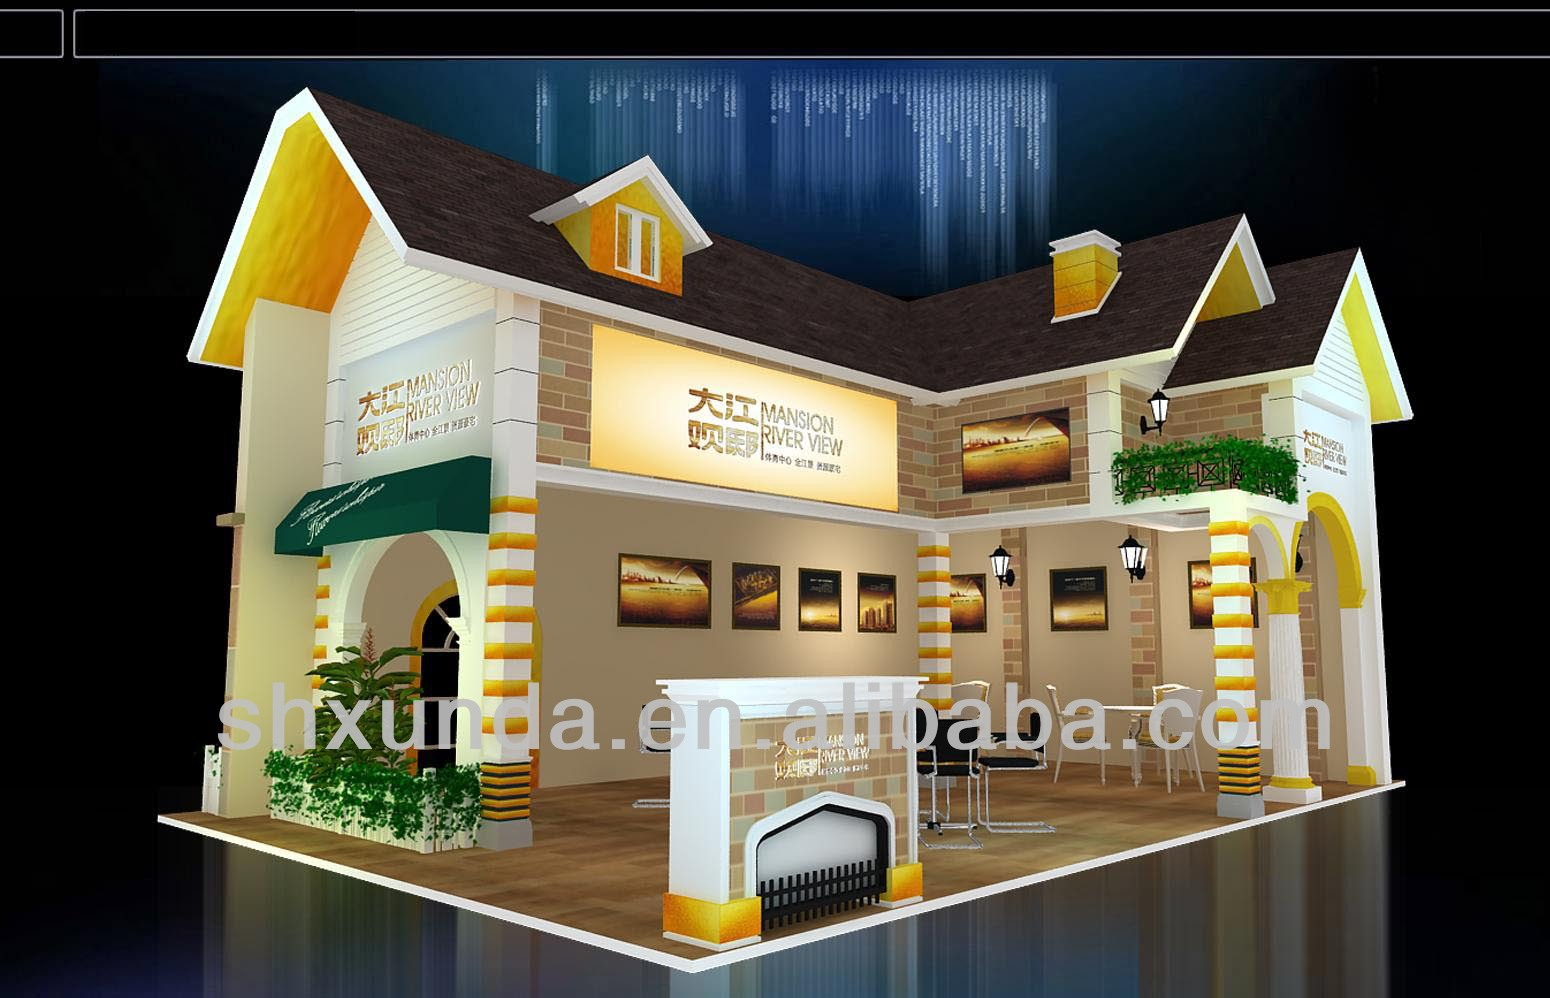 real estate exhibiton/ fair/ event booth/ stall/ stand/pavilion kiosk design and building